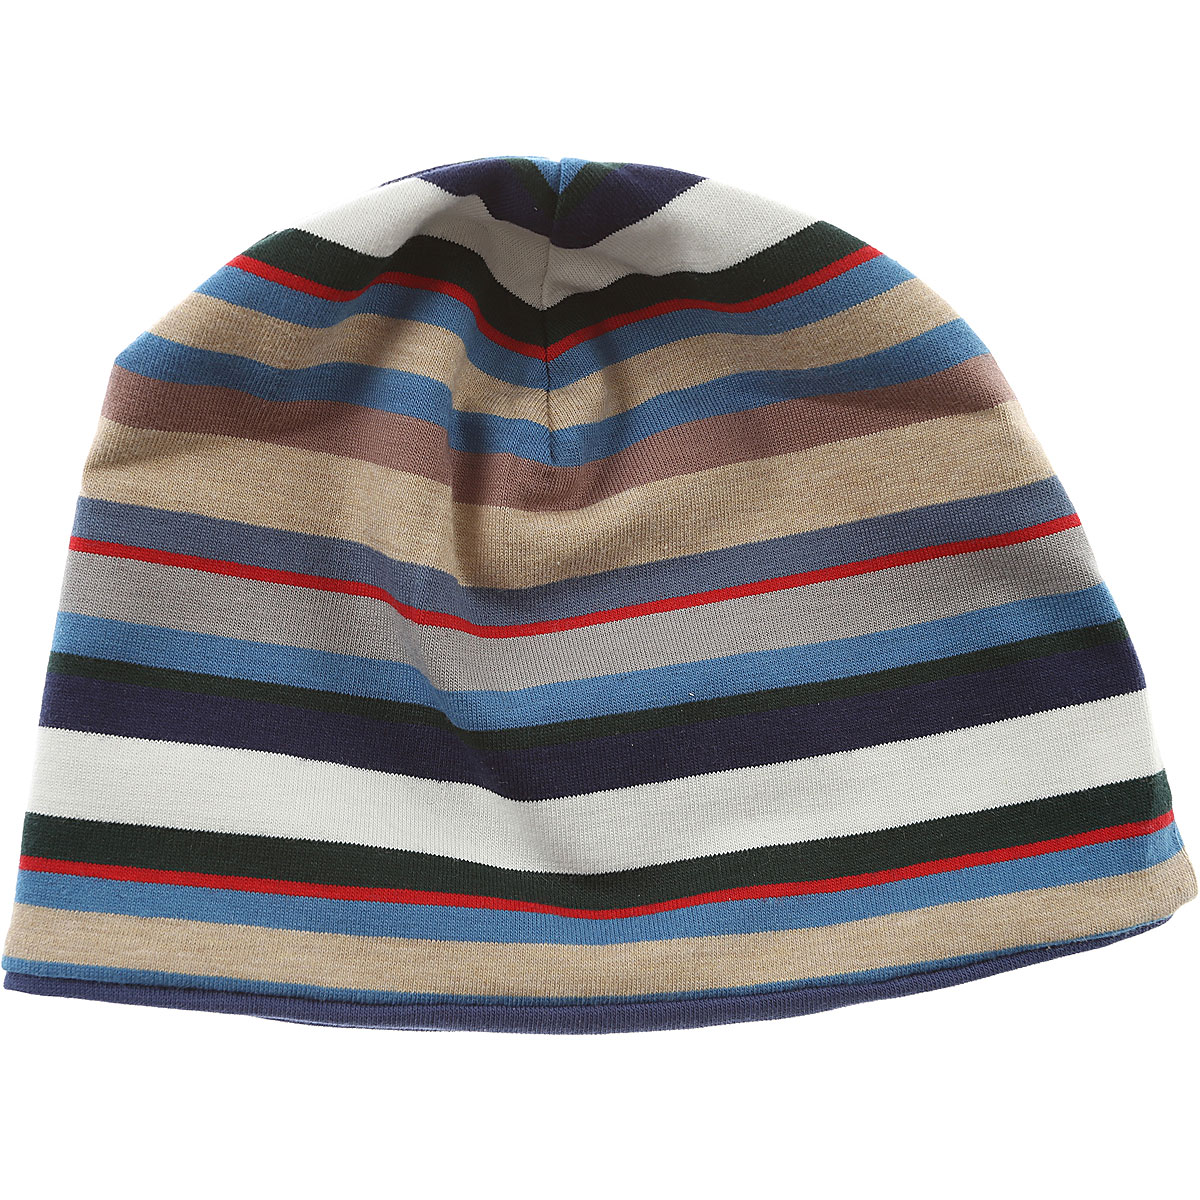 Gallo Baby Hats for Boys On Sale in Outlet, Multicolor, Cotton, 2019, 11m 6m